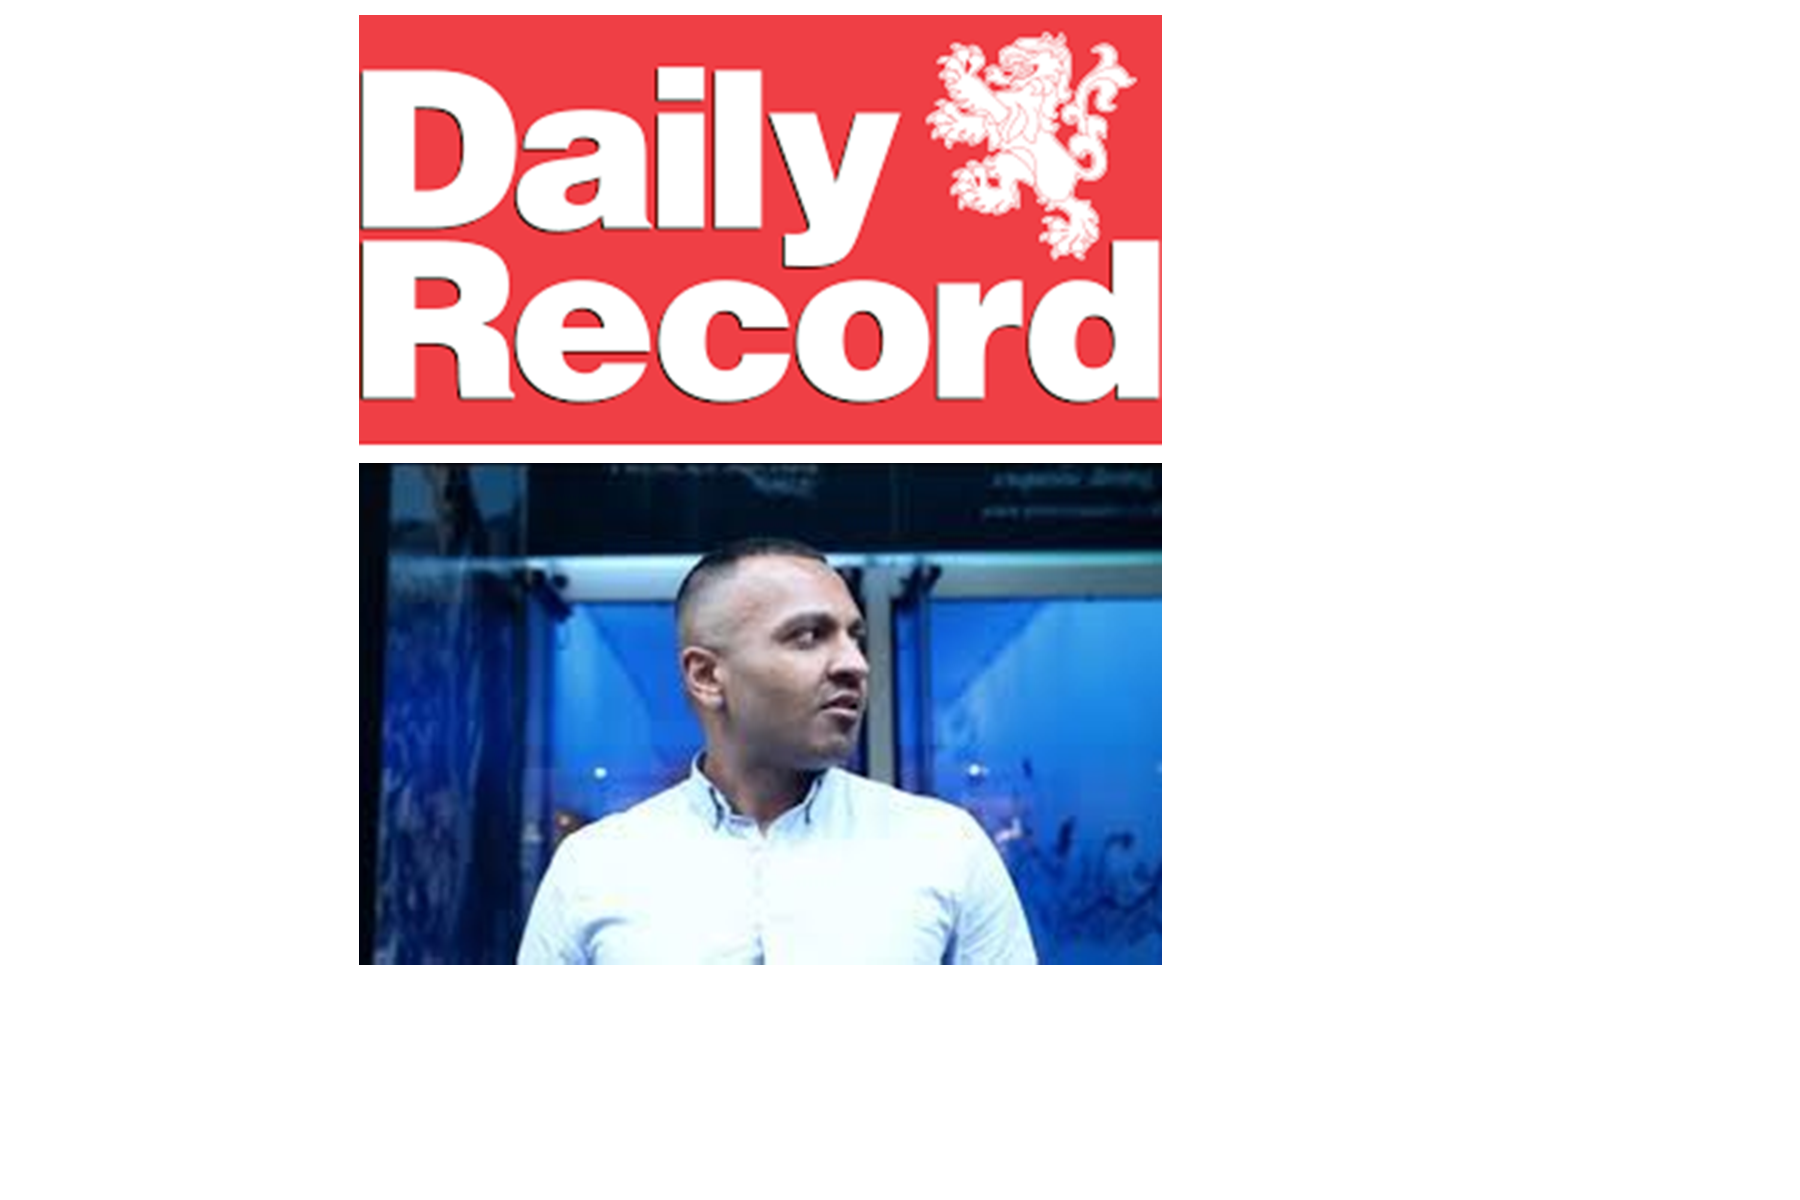 """Corrupt """"Record View"""" (Daily Record) Westminster Drugs Policy Article Used As Associated Propaganda To Further Defame Adnan Ahmed aka Addy Agame"""